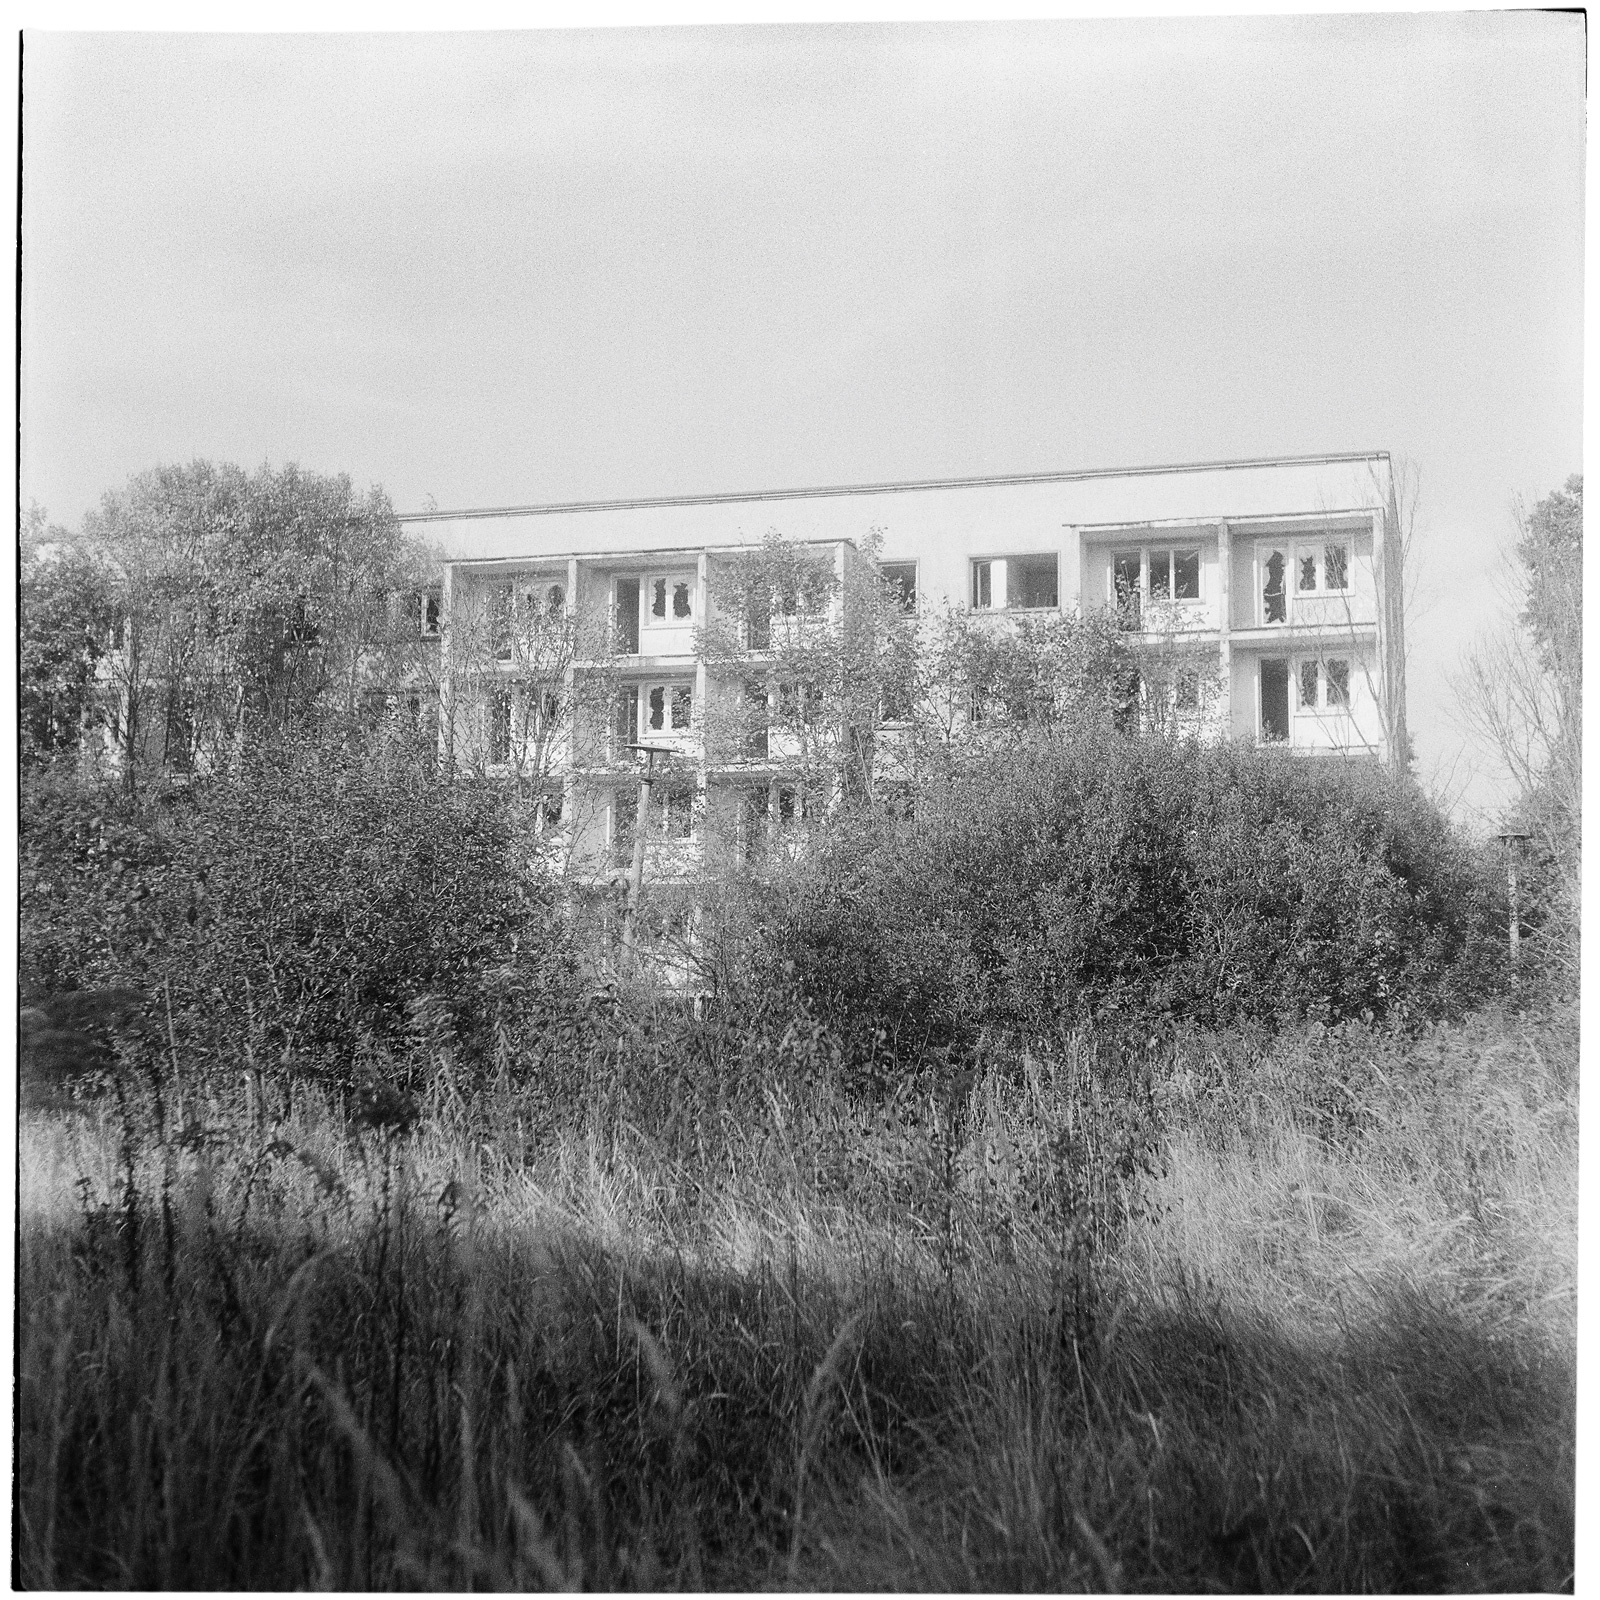 Flats. Probably for the officers and their families. Soviet Military Base SW. Former DDR, Germany. October 2014.